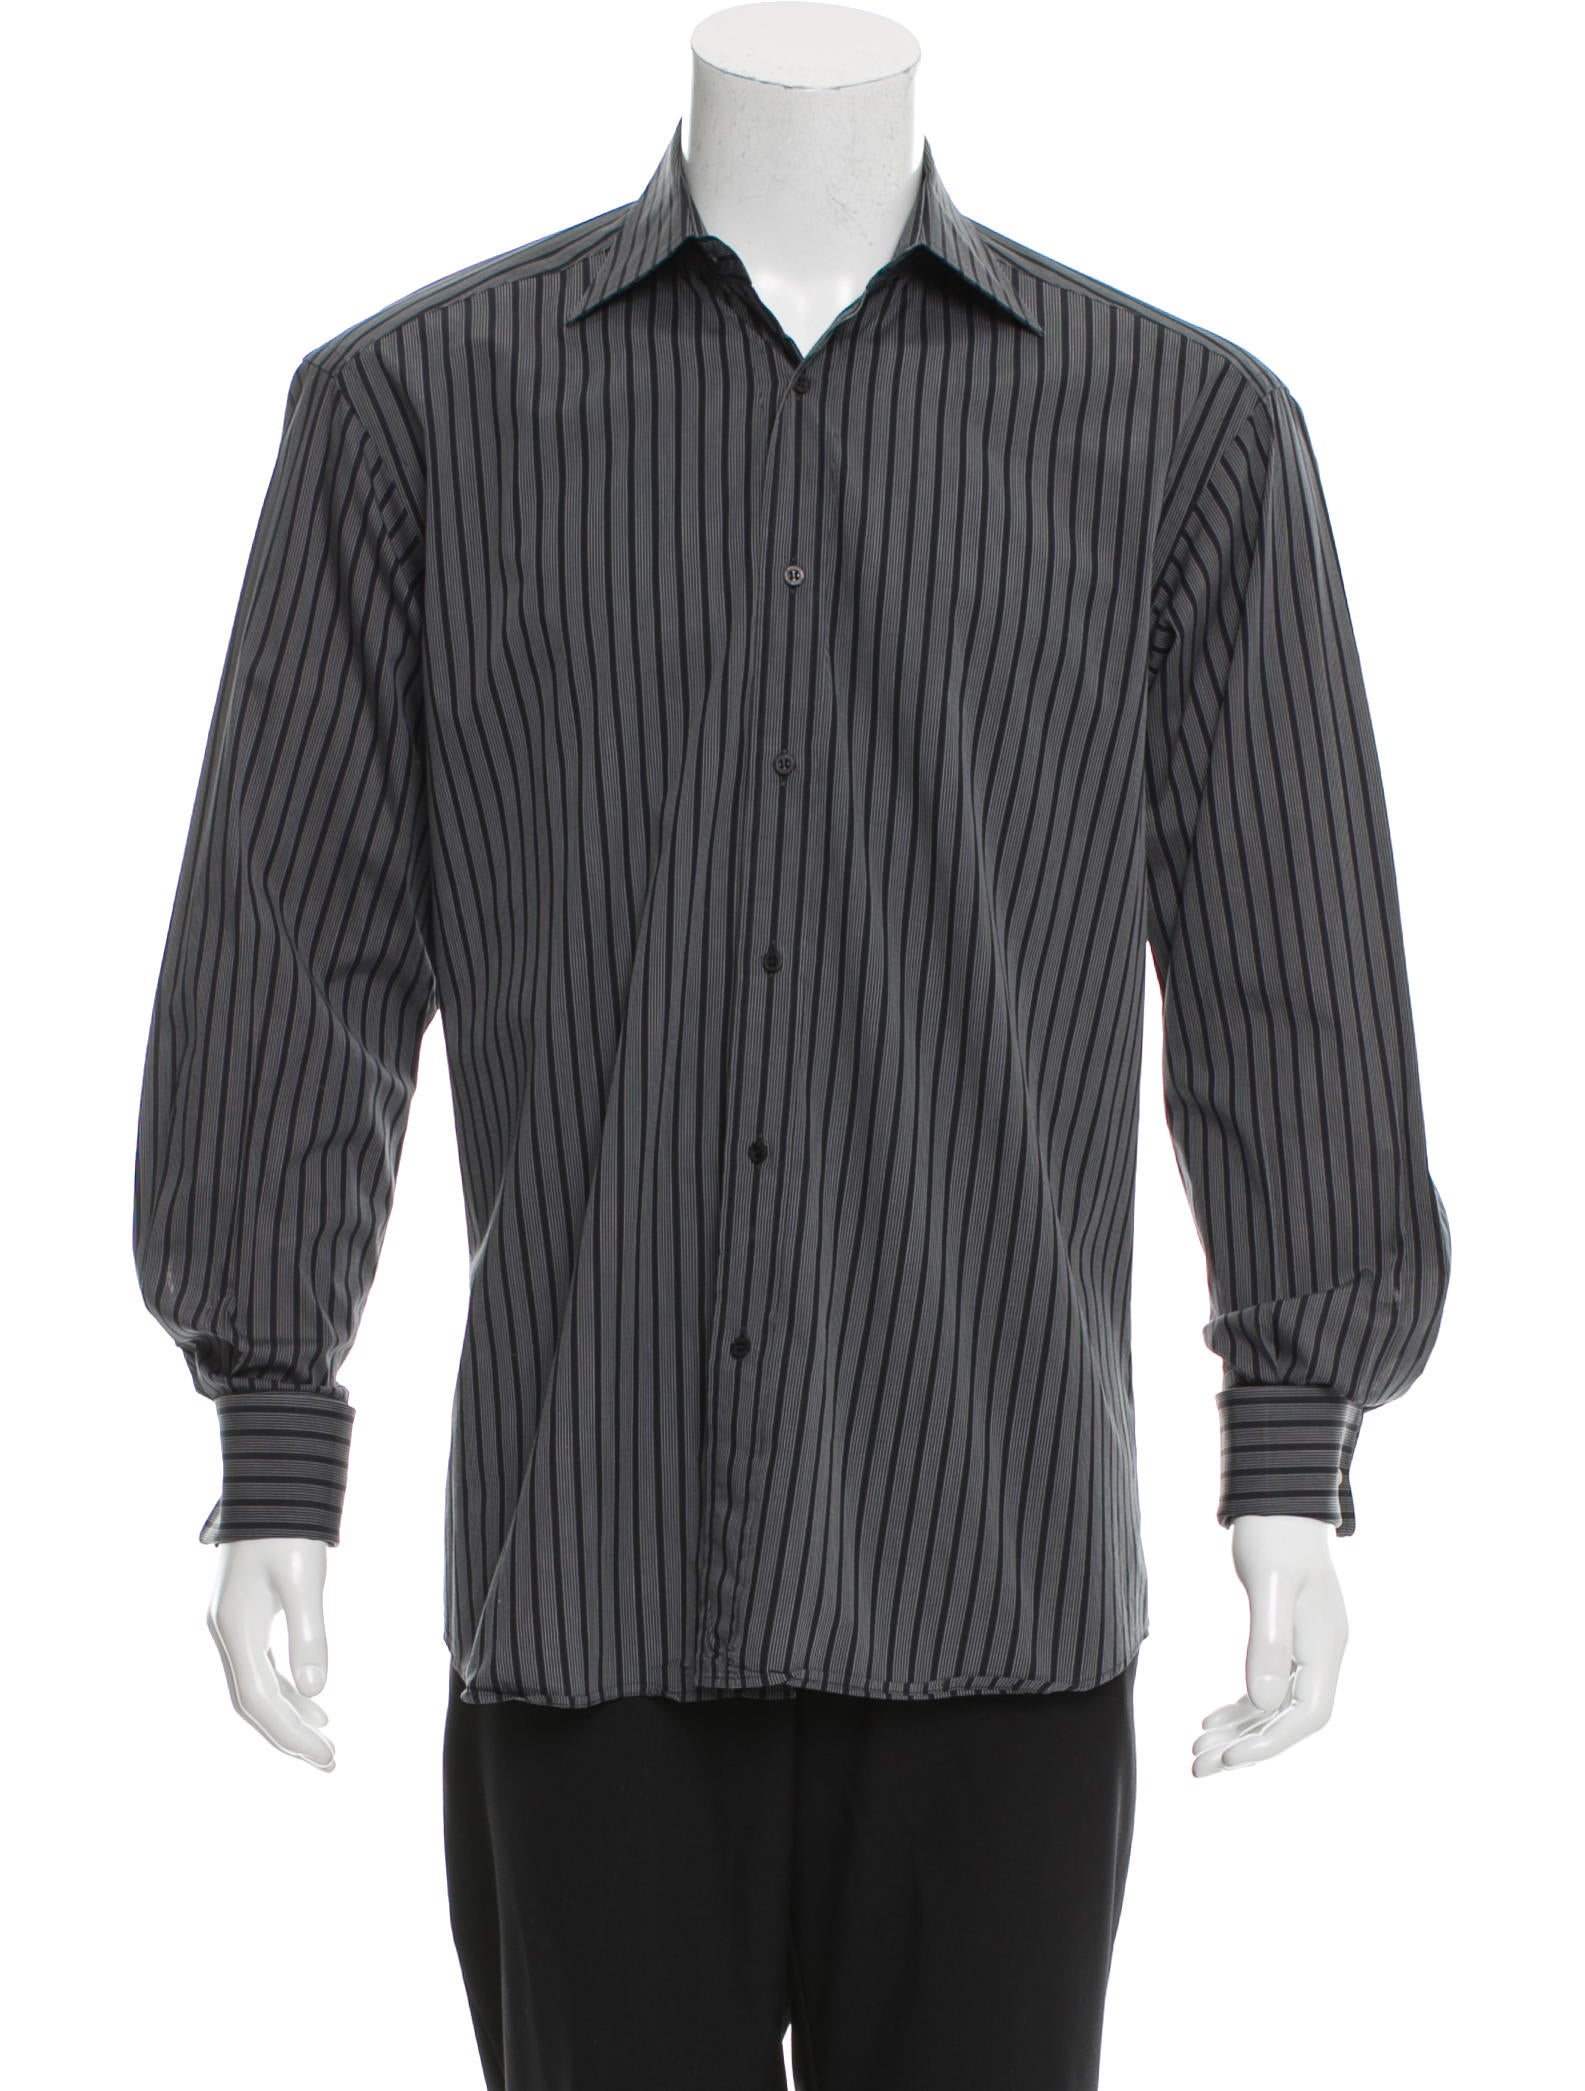 Gucci striped button up shirt clothing guc141386 the for Striped button up shirt mens